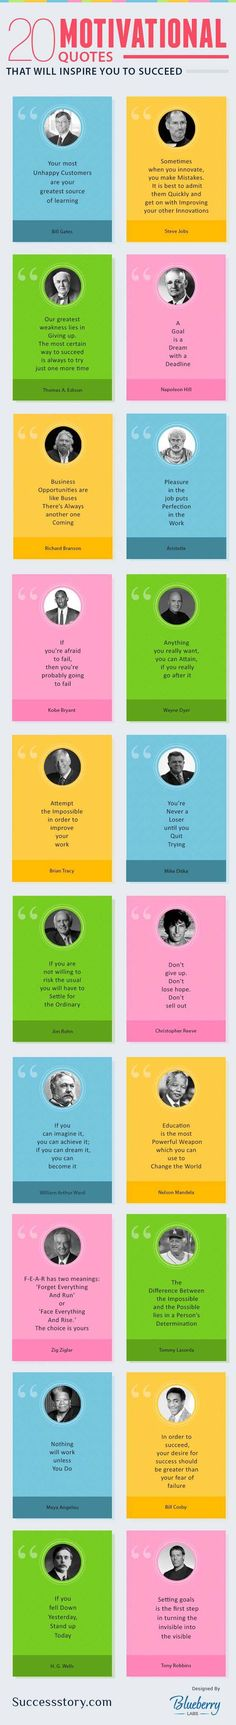 20 Motivational Quotes to inspire you to succeed